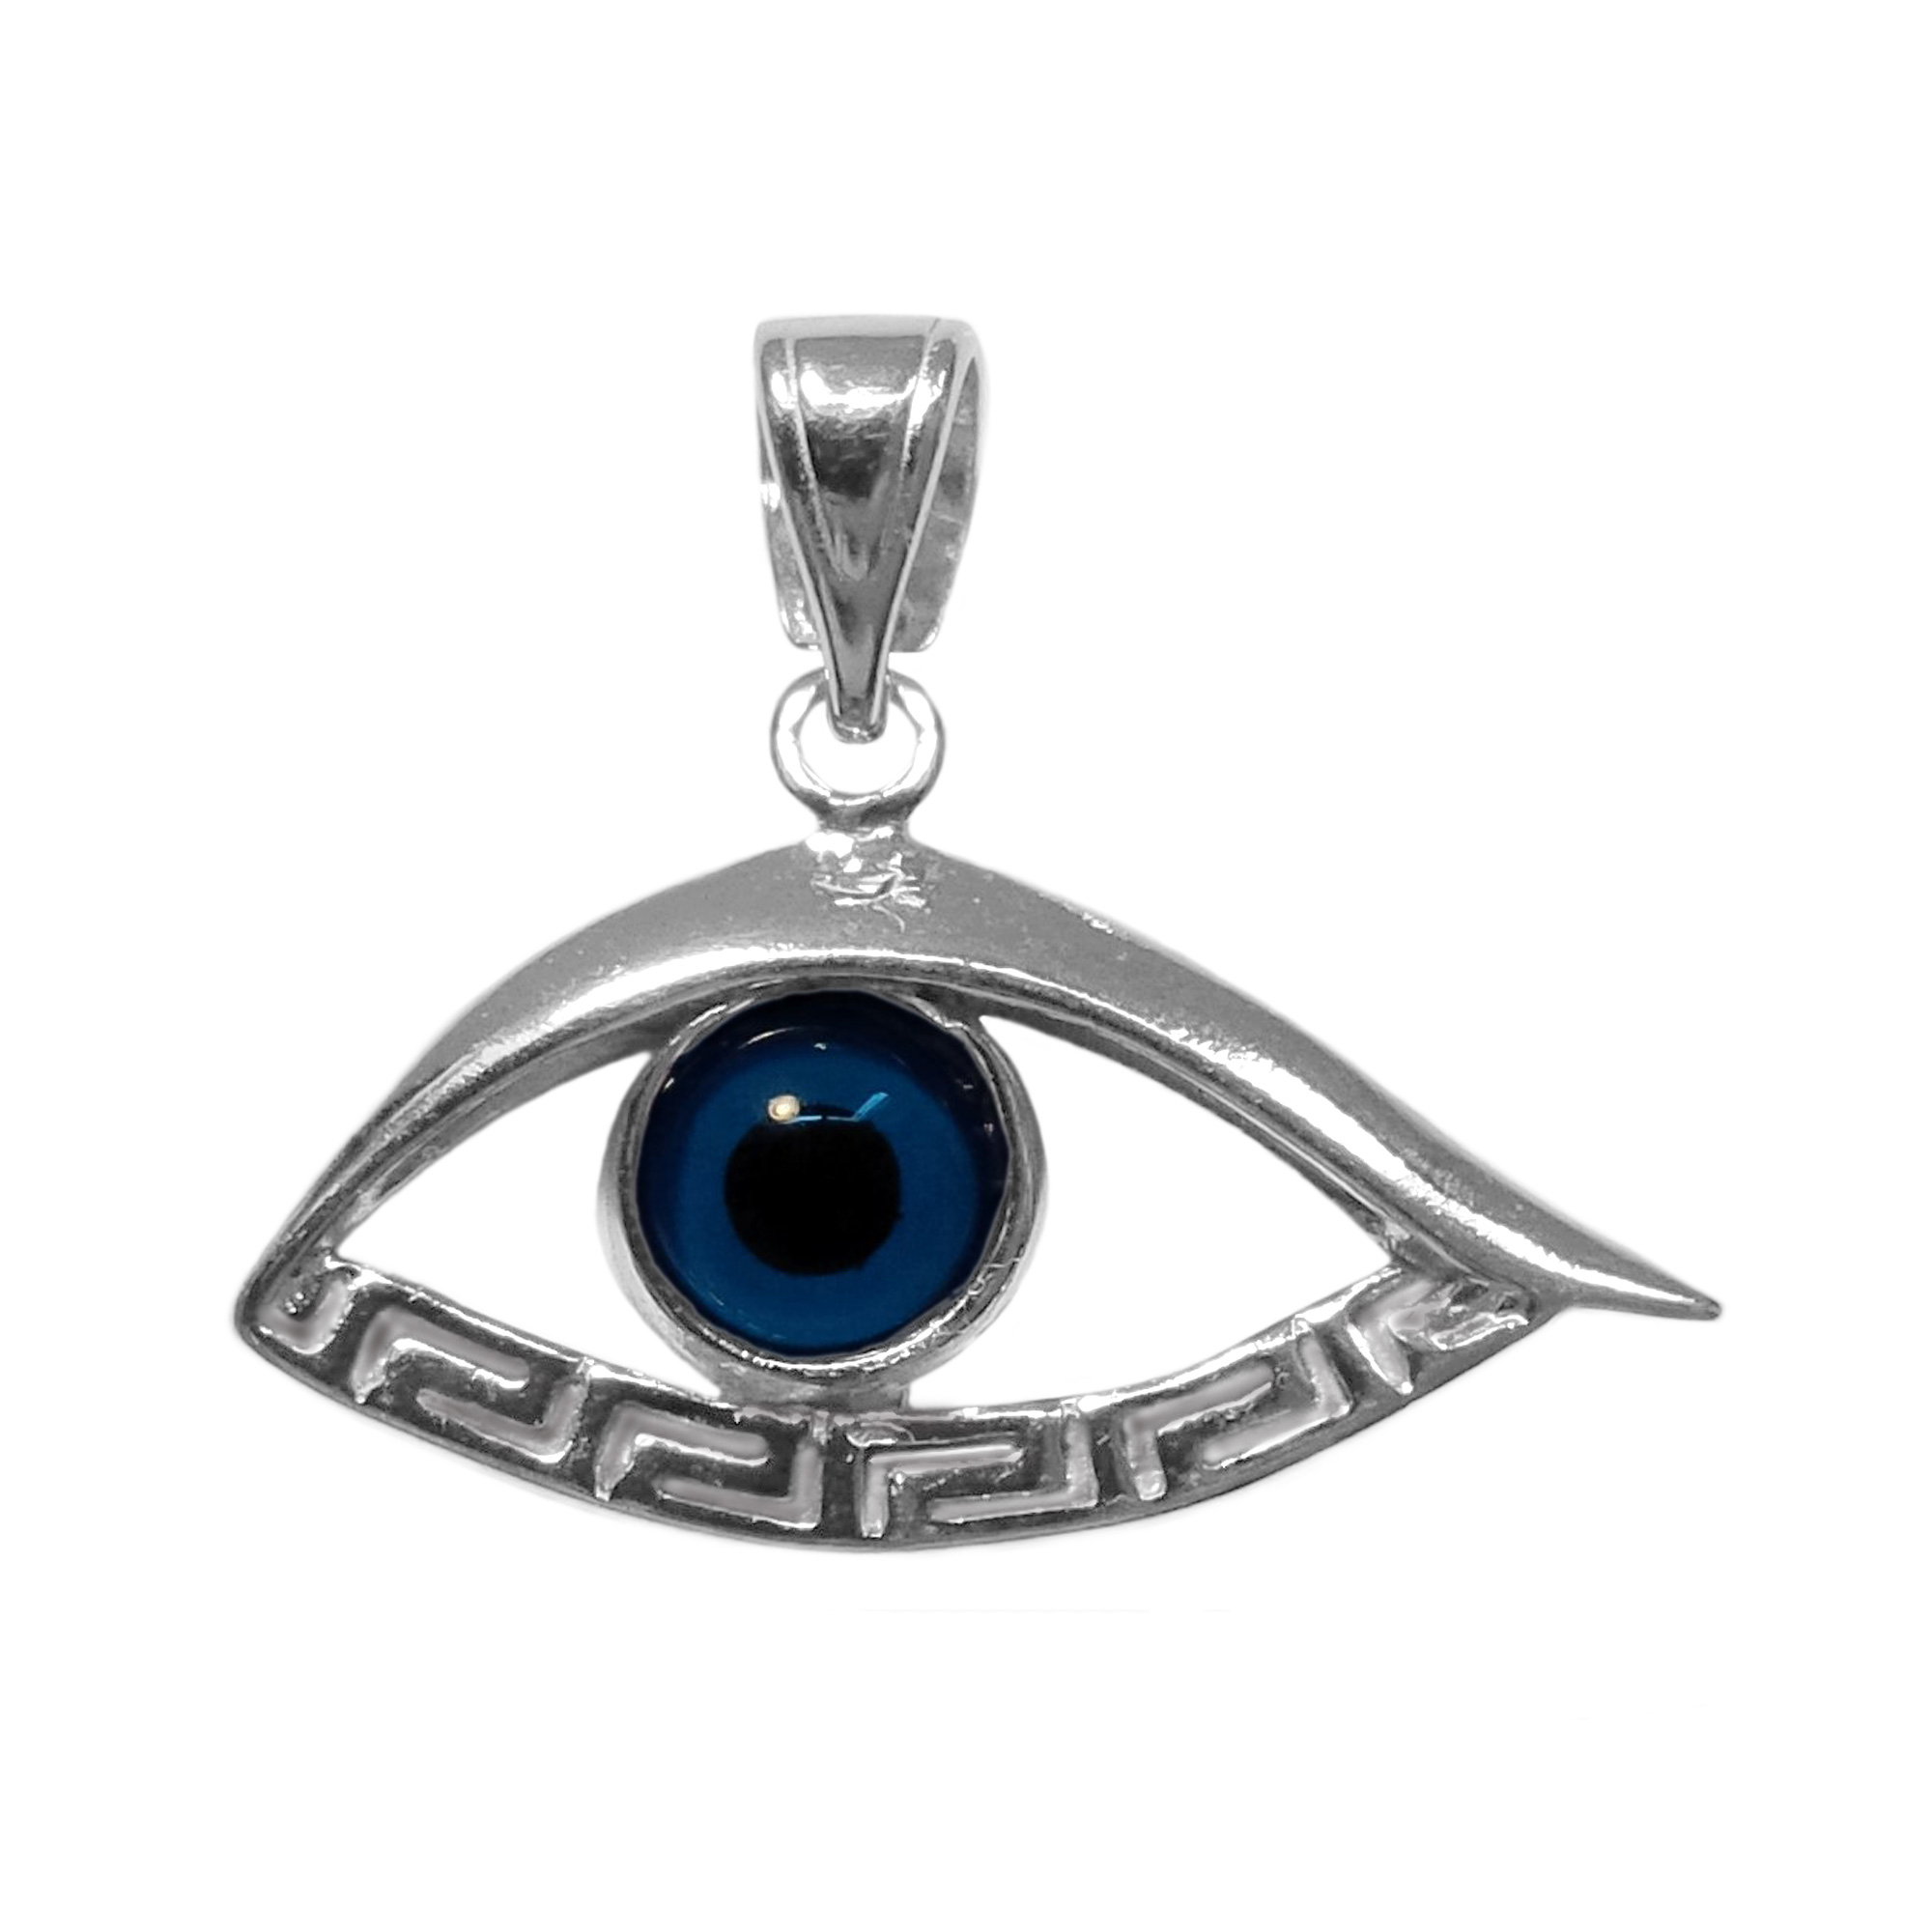 Sterling Silver Greek Key Evil Eye Meandros Pendant Inspired from the of Greek ancient jewelry era, this sterling silver charm features the Greek Key Motif, also known as the Meander or eternity symbol, bordering a beautiful glass Evil Eye.